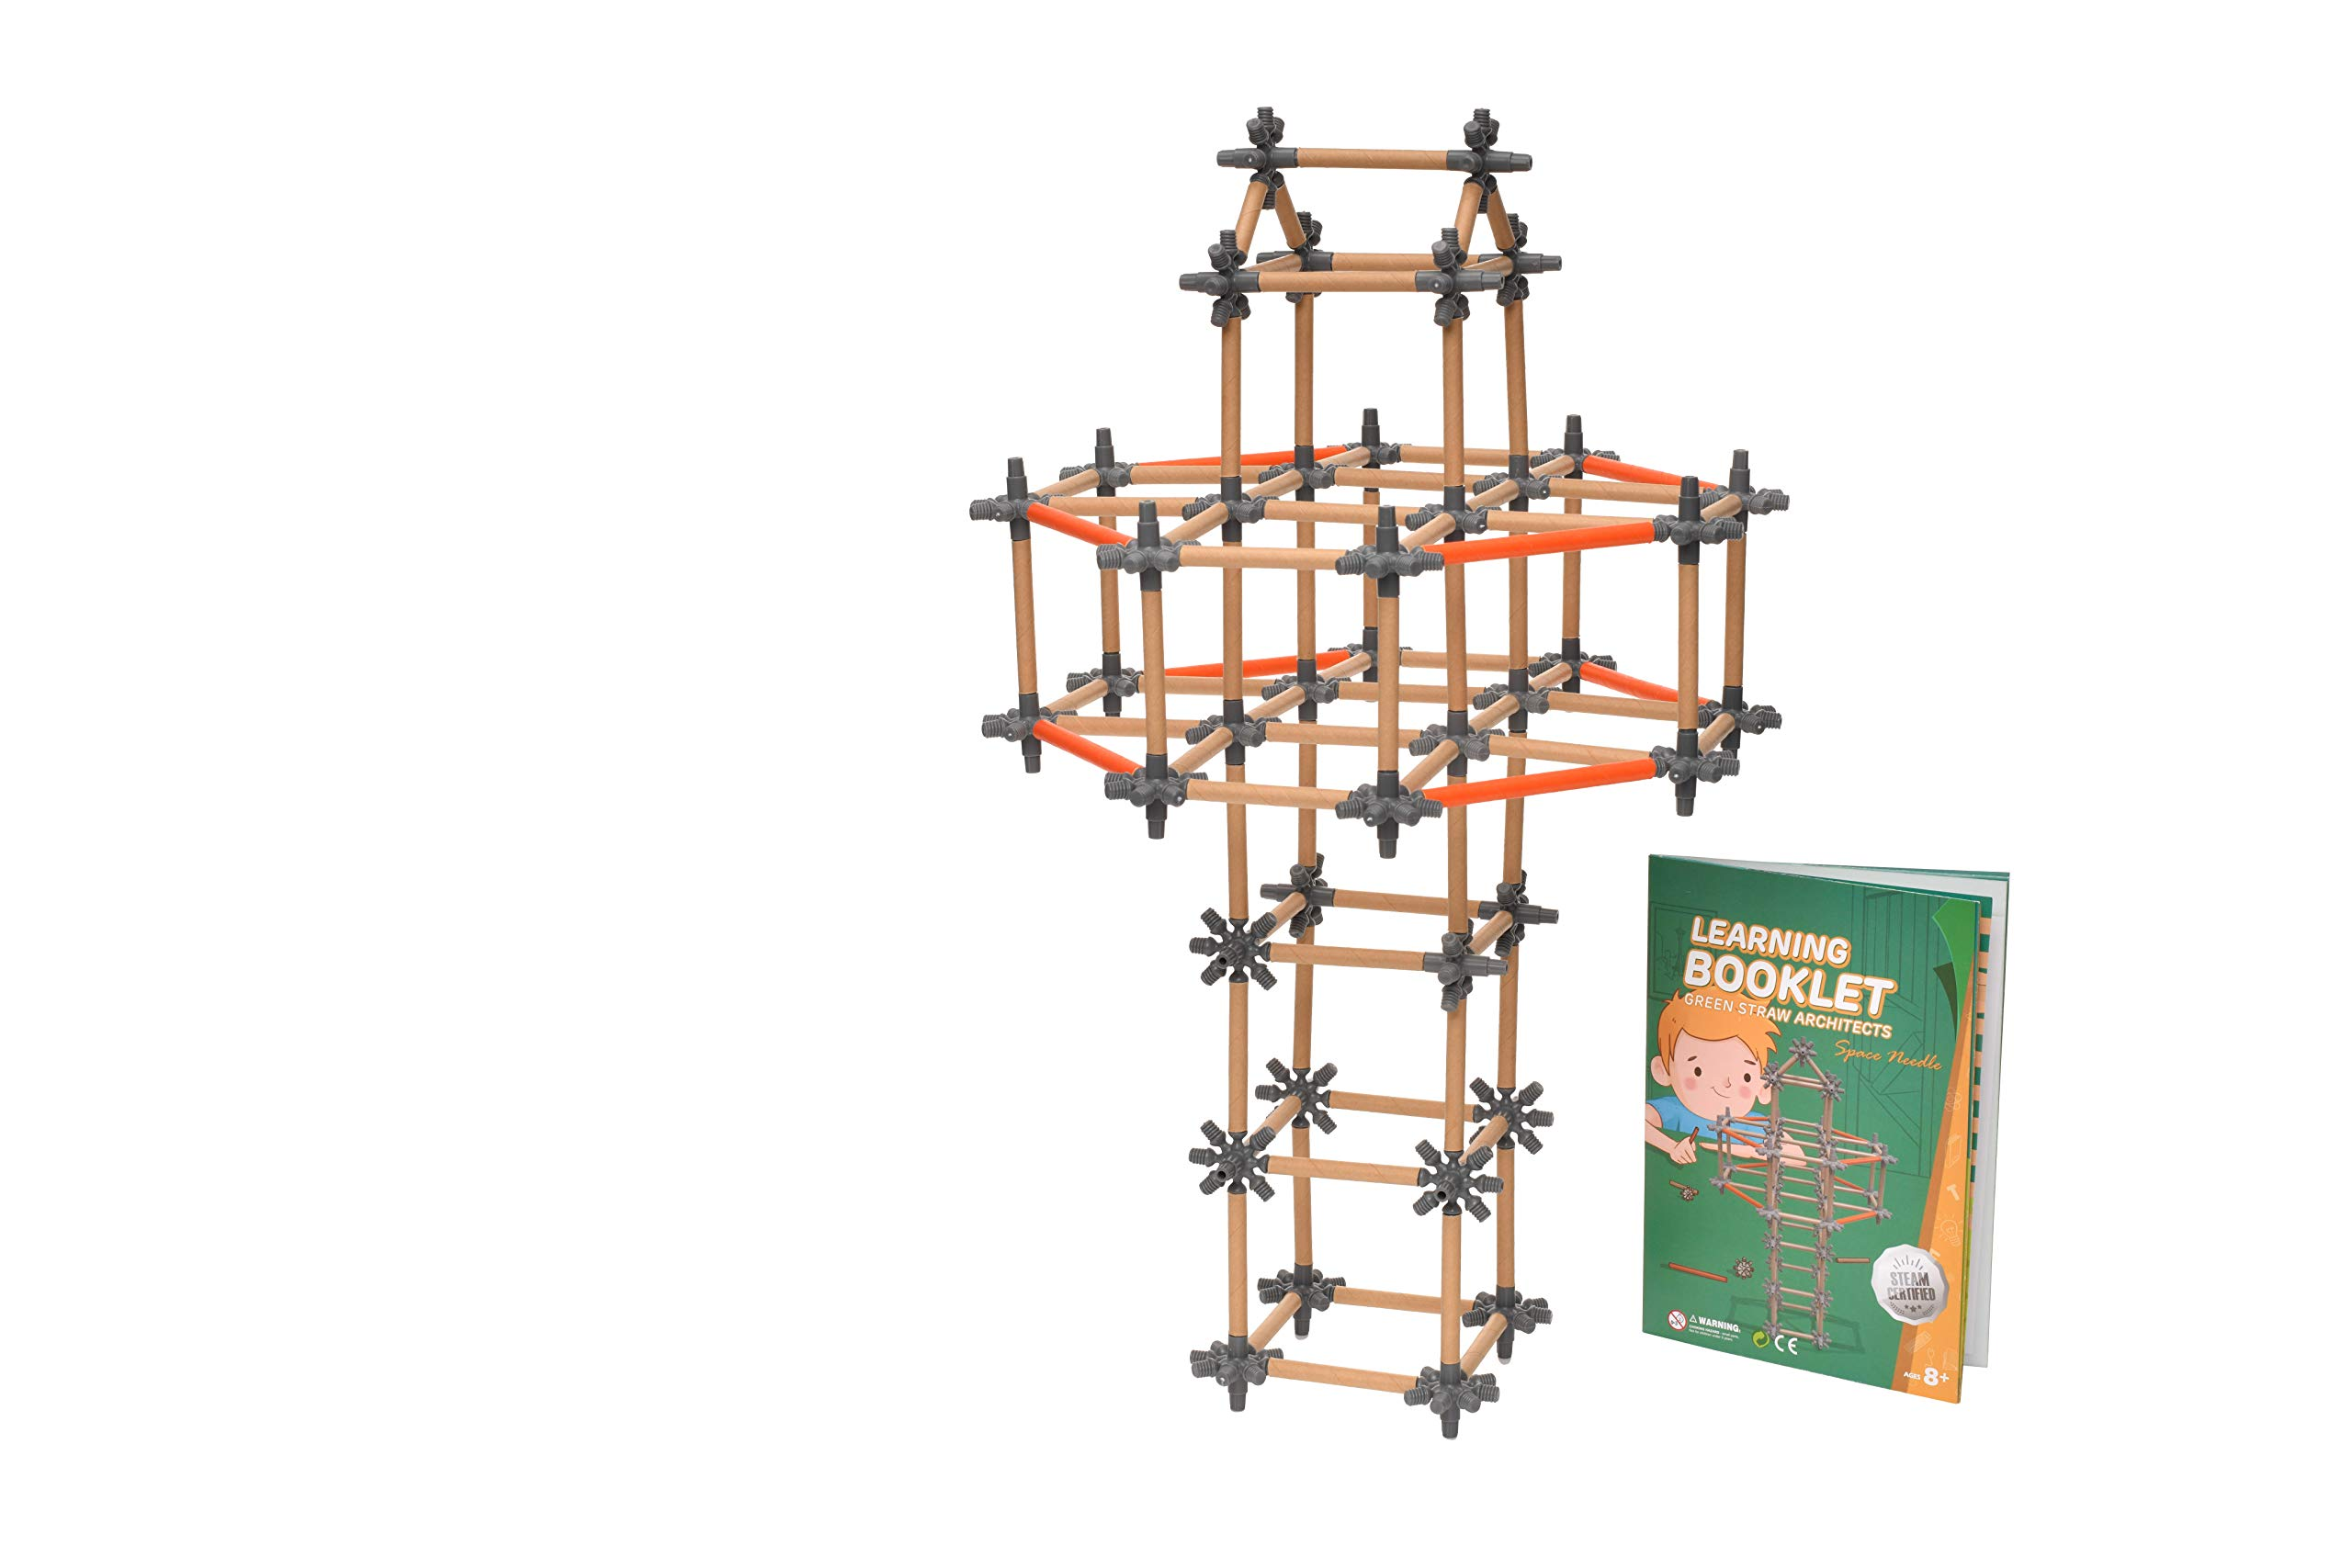 PLAYSTEAM Green Straw Building Stem Toy Kits-Paper Material Safe for Kids-Fun Educational Building Toy Set for Boys and Girls Ages 5 6 7 8 9 10 Year Old- Great Science Experiment